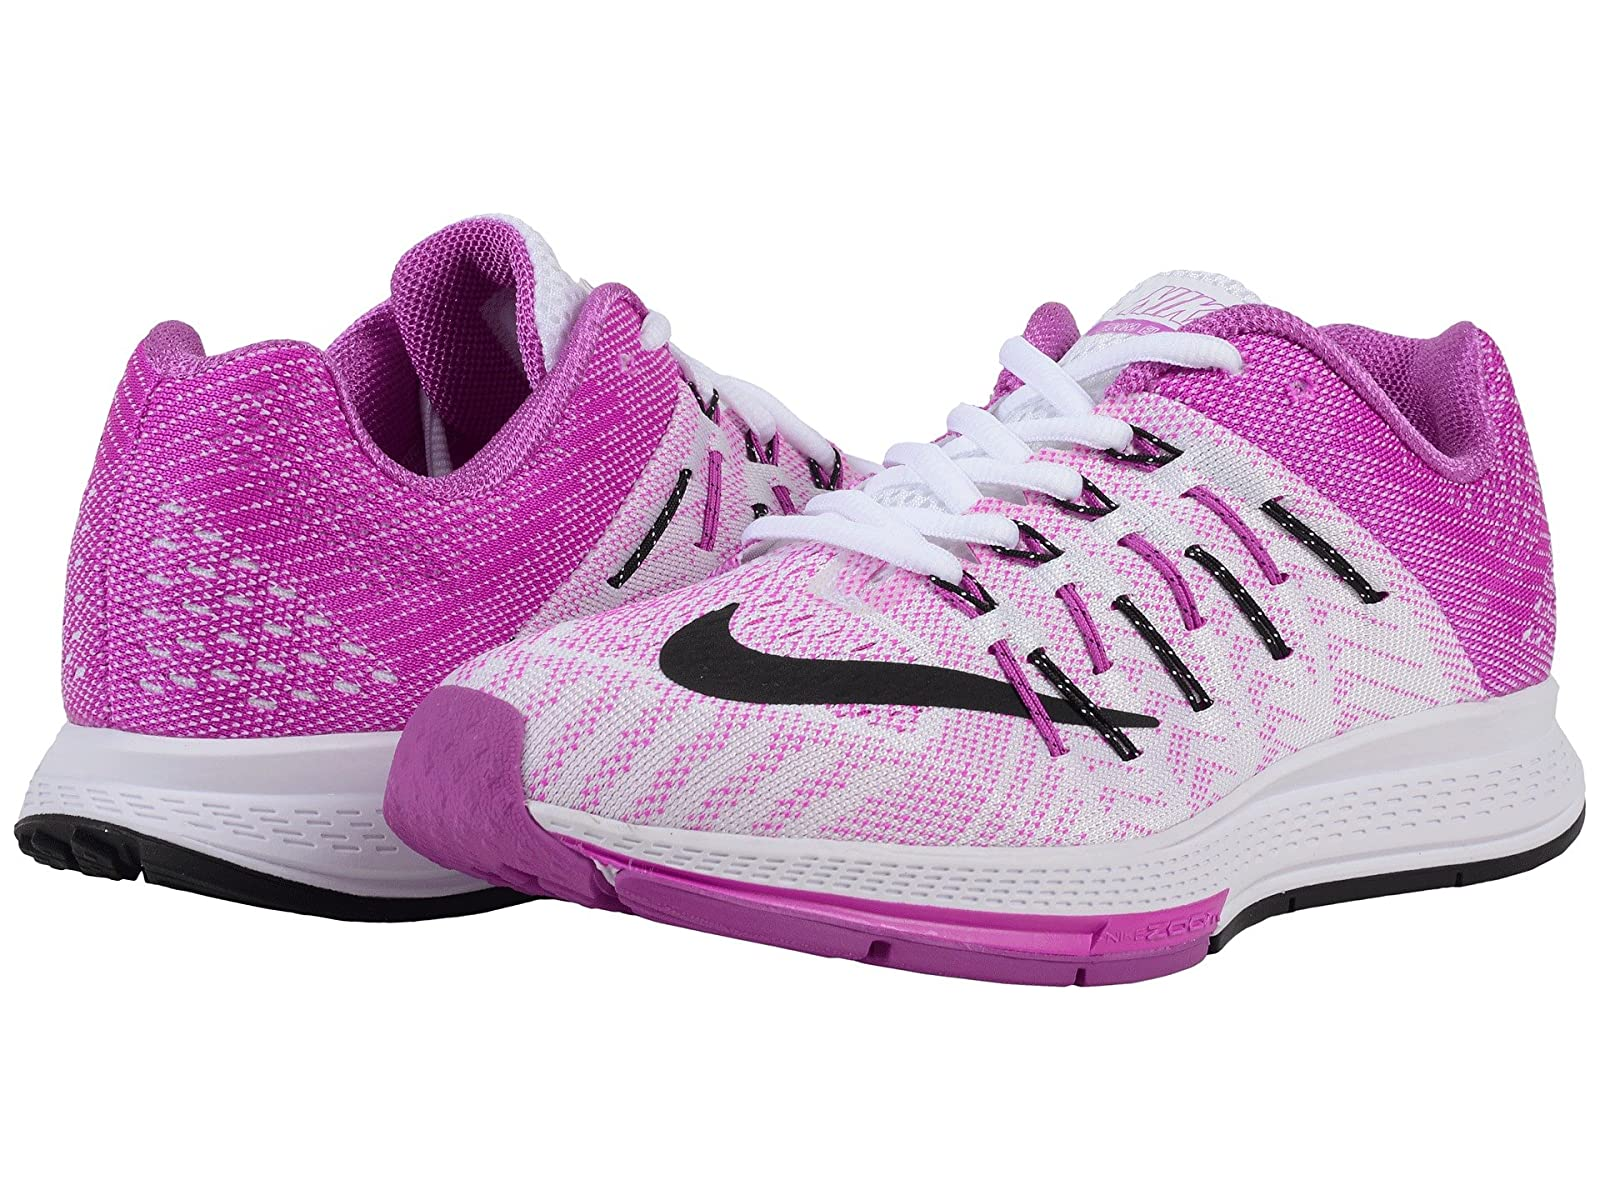 Nike Air Zoom Elite 8Cheap and distinctive eye-catching shoes